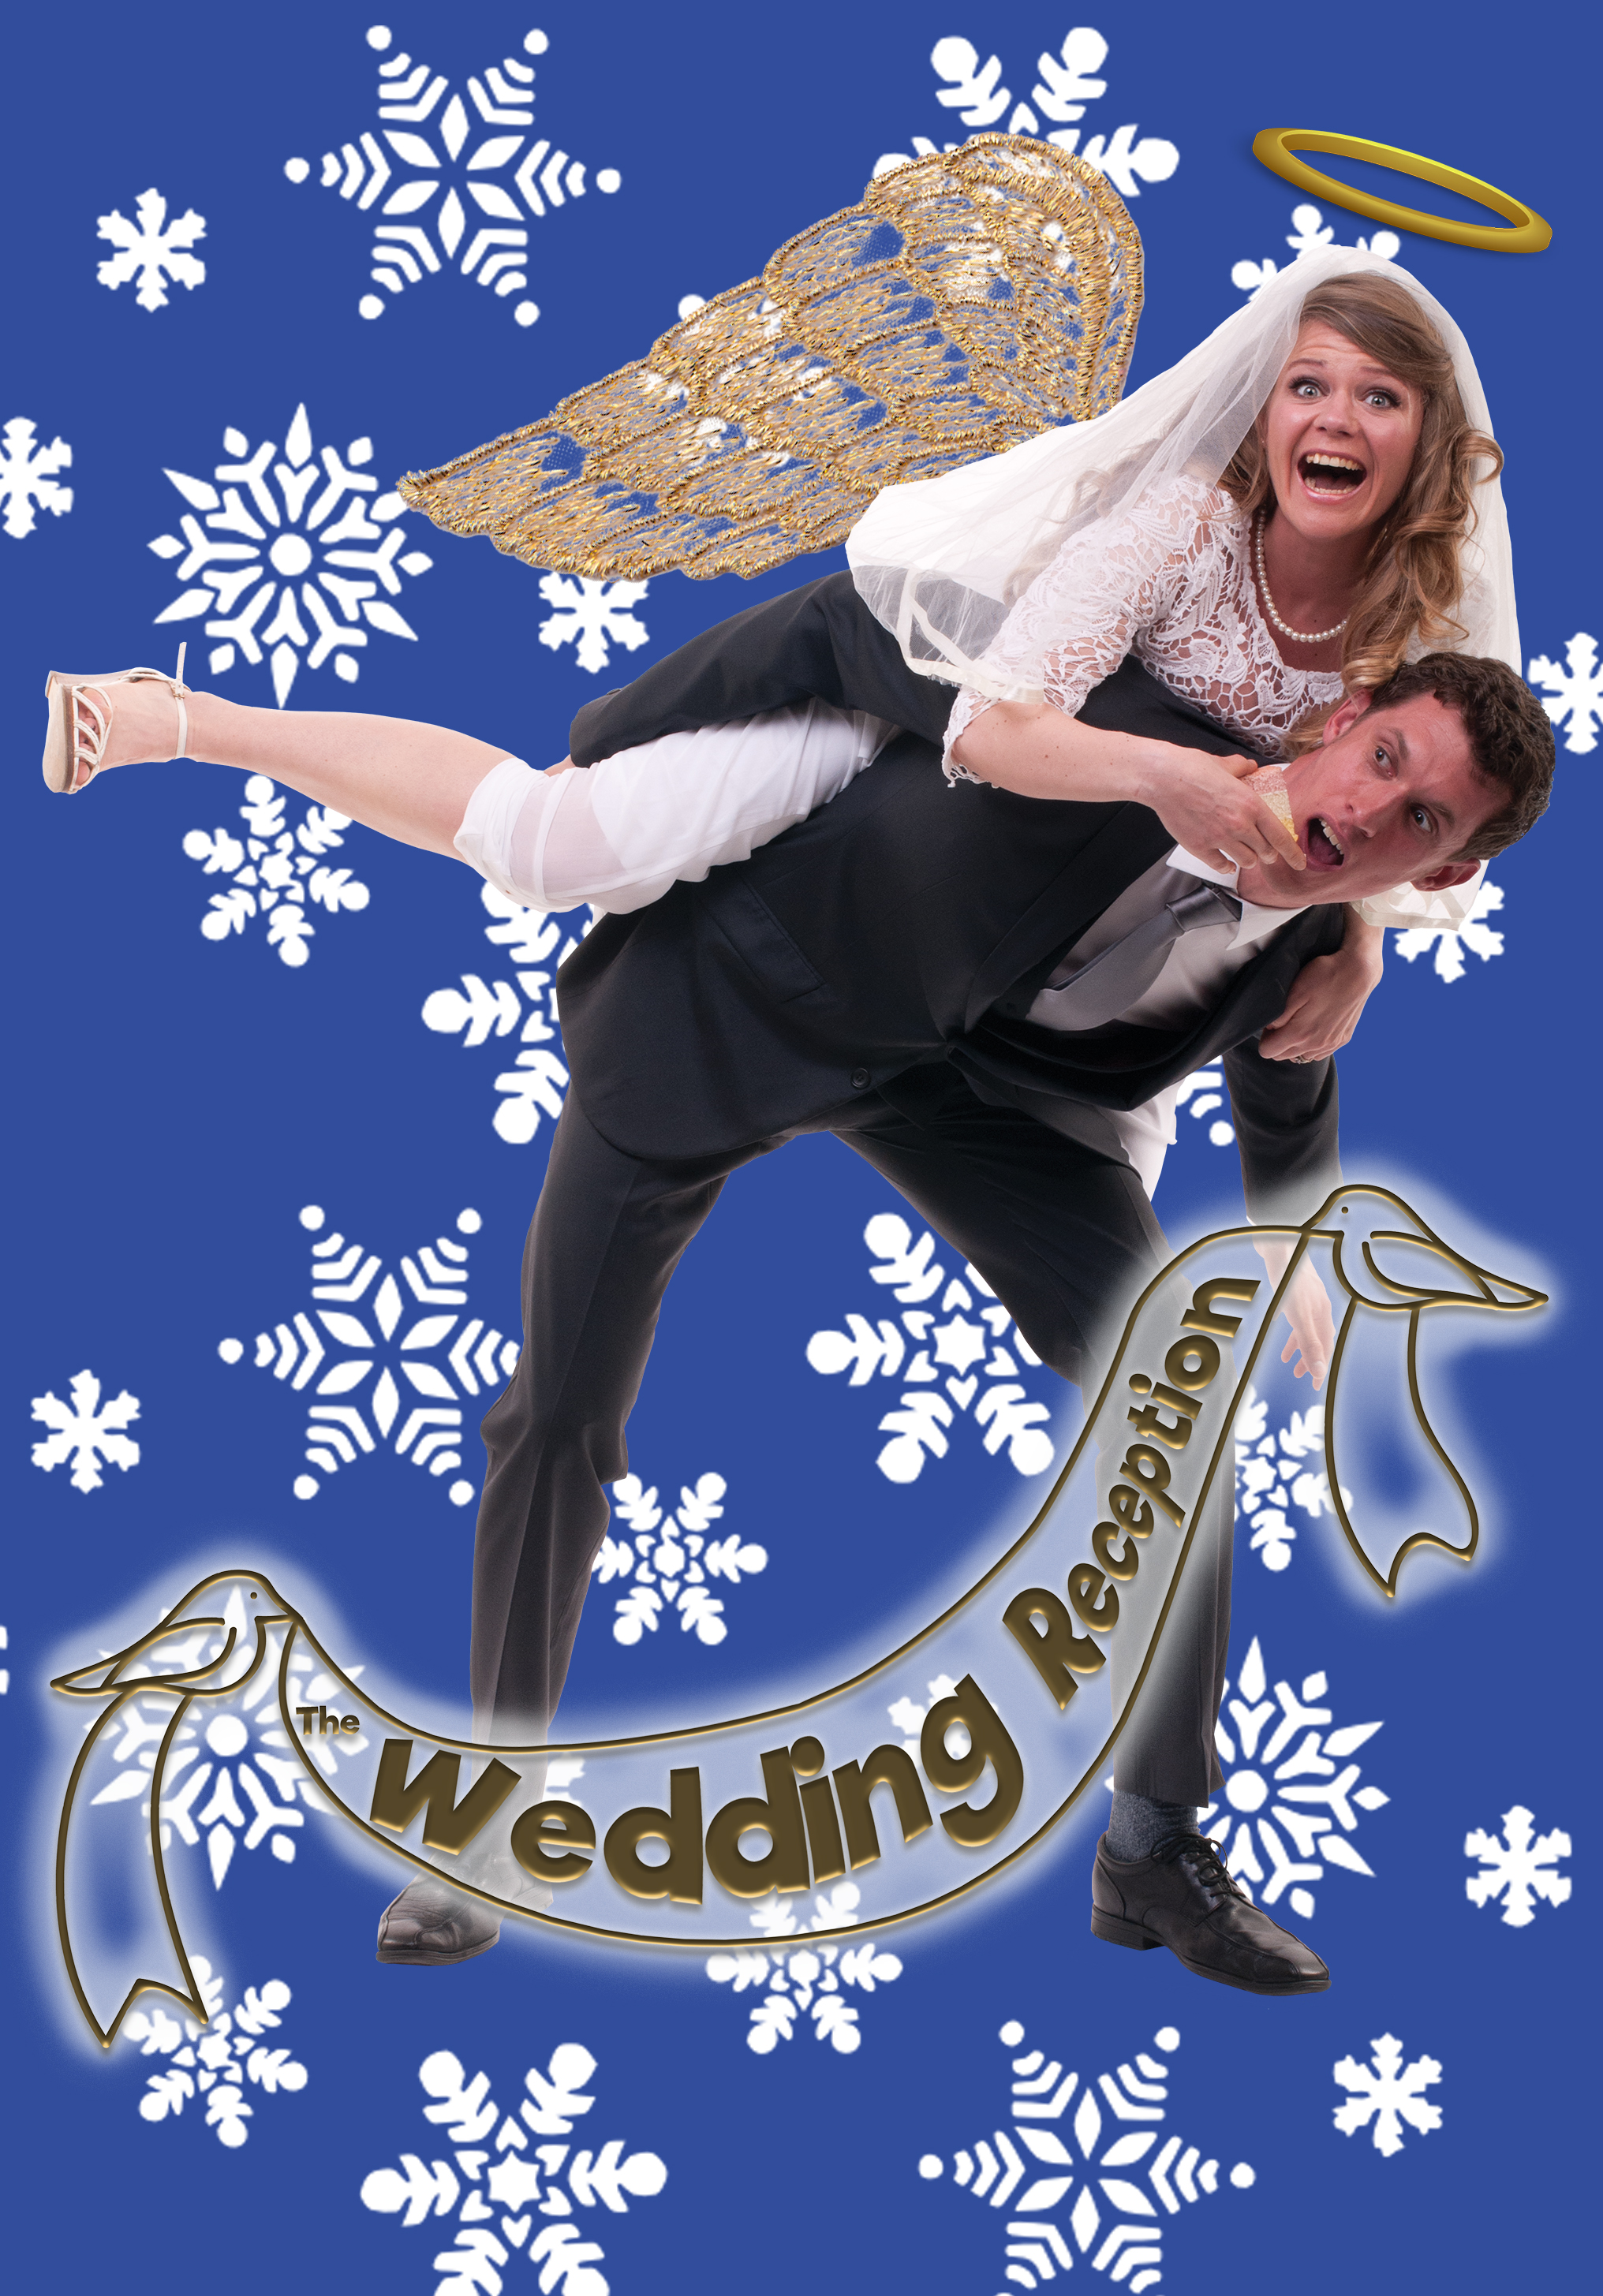 will-kate_jono-katie_piggyback-christmas